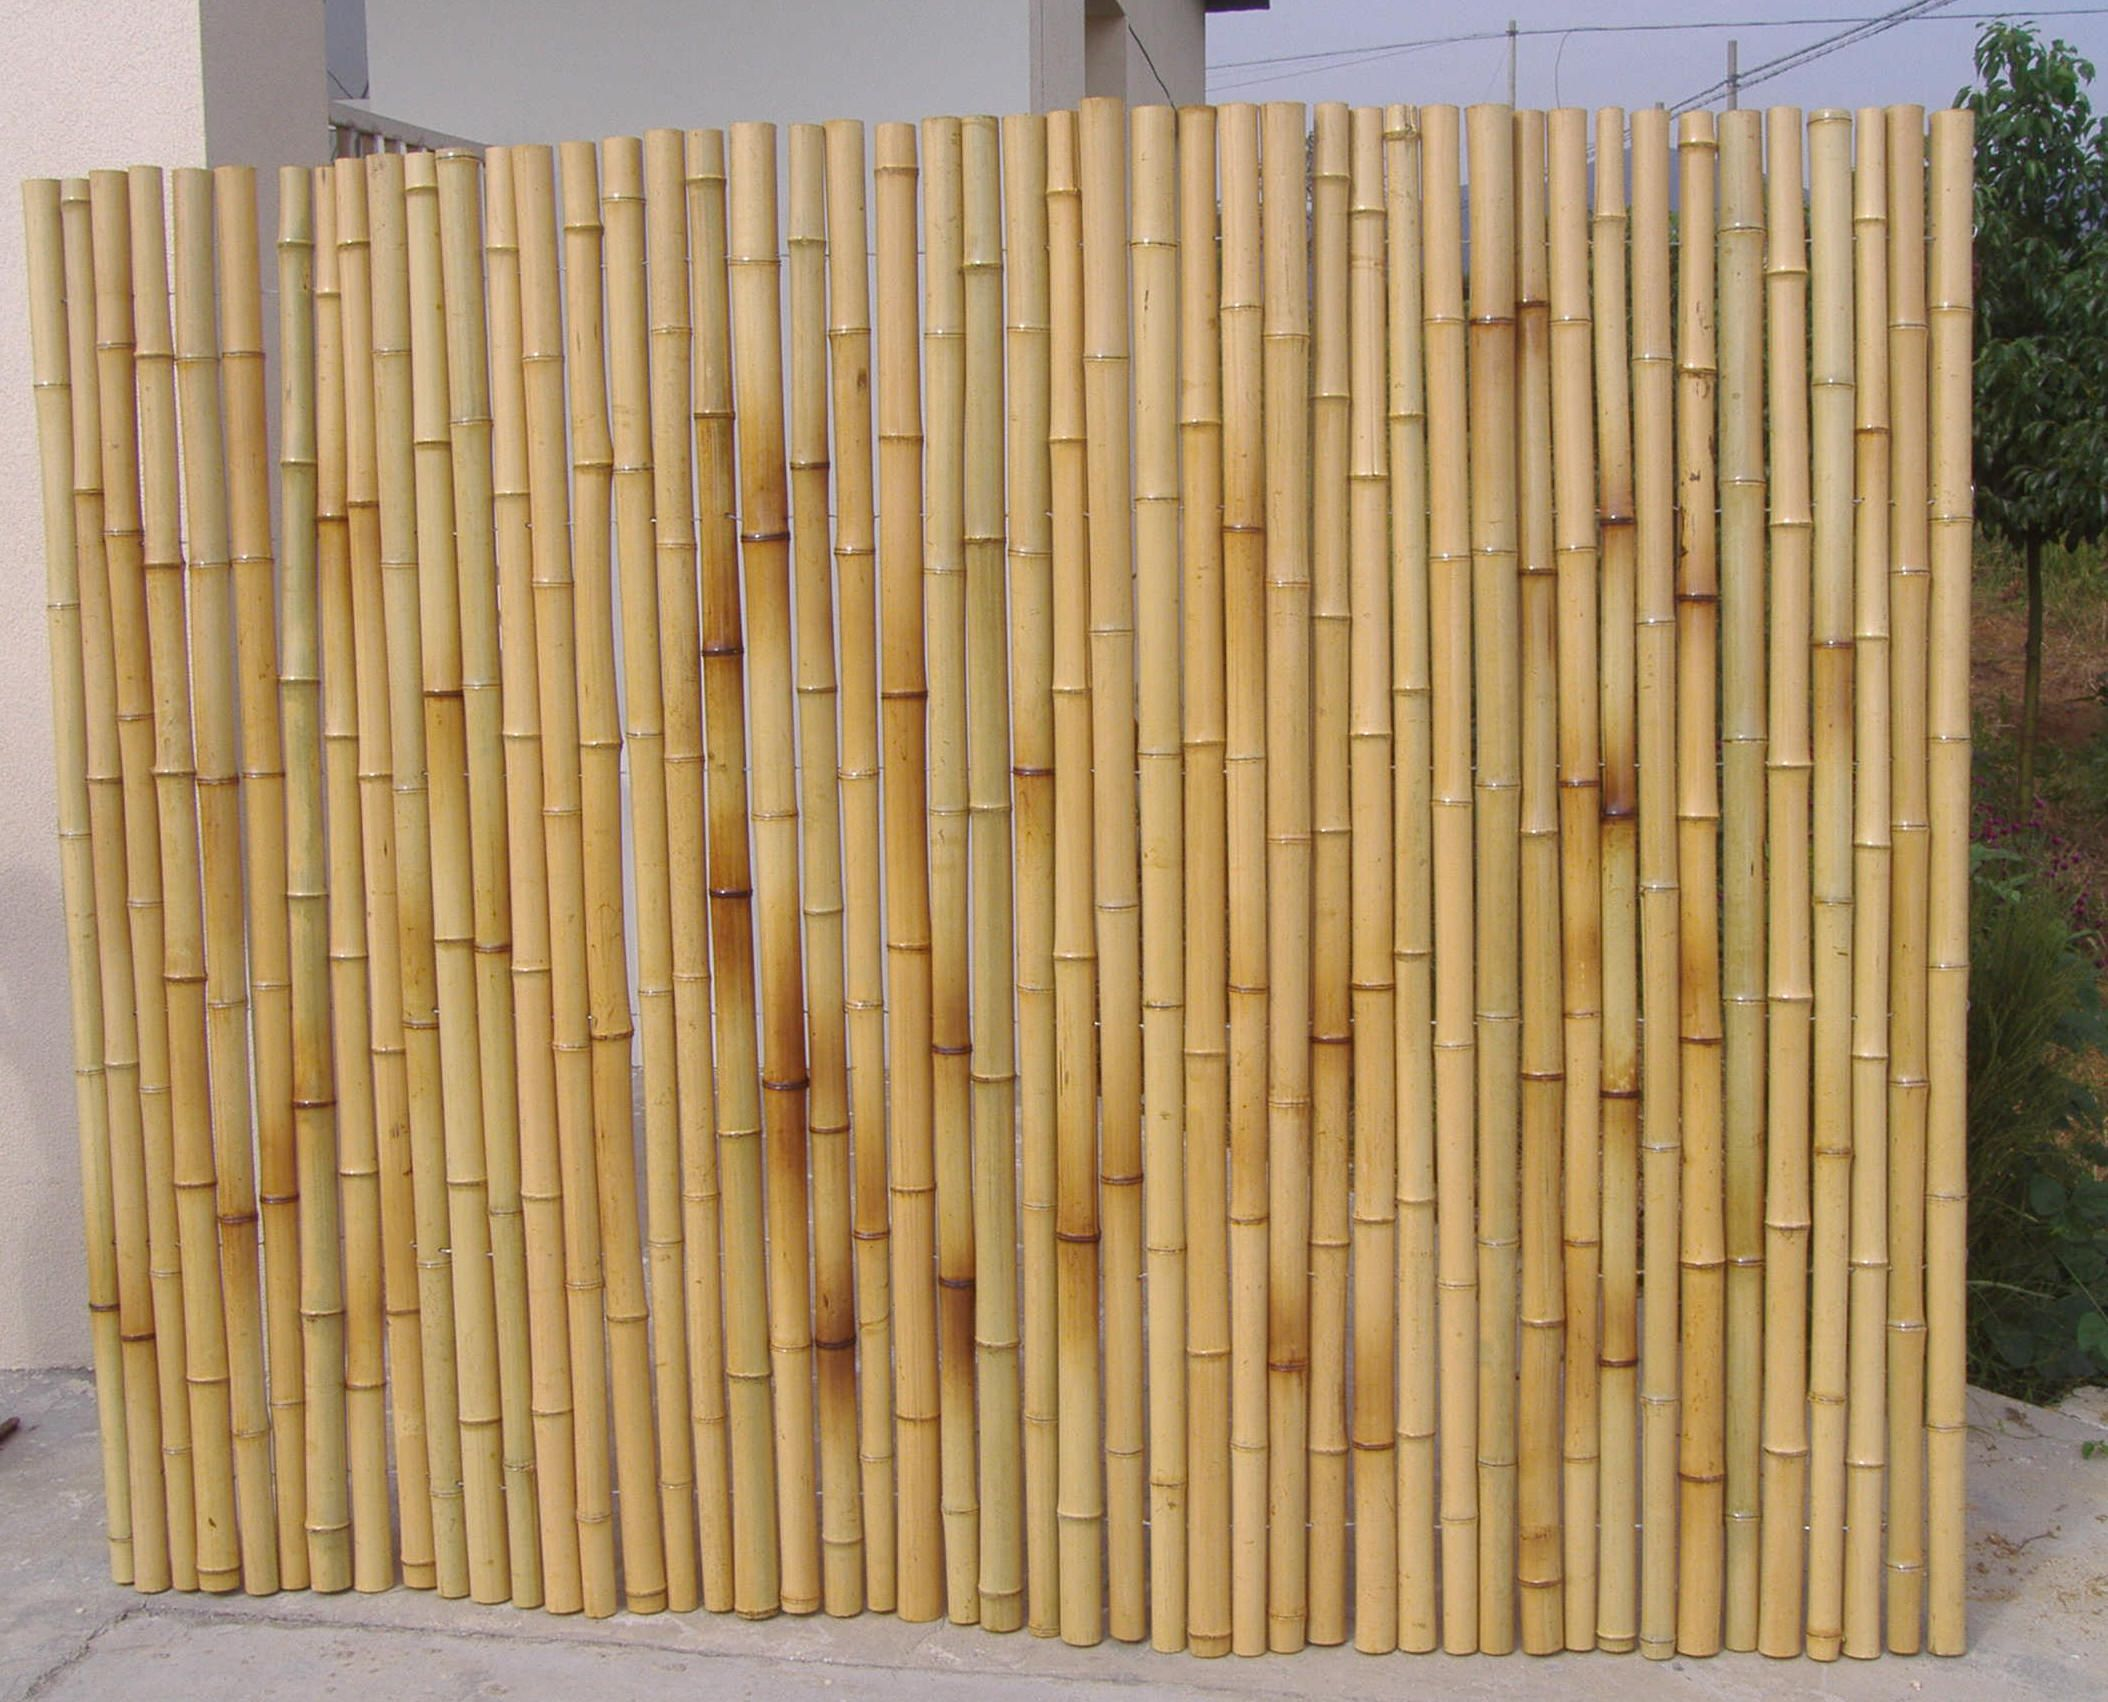 How To Build A Bamboo Fence LivingGreenAndFrugally